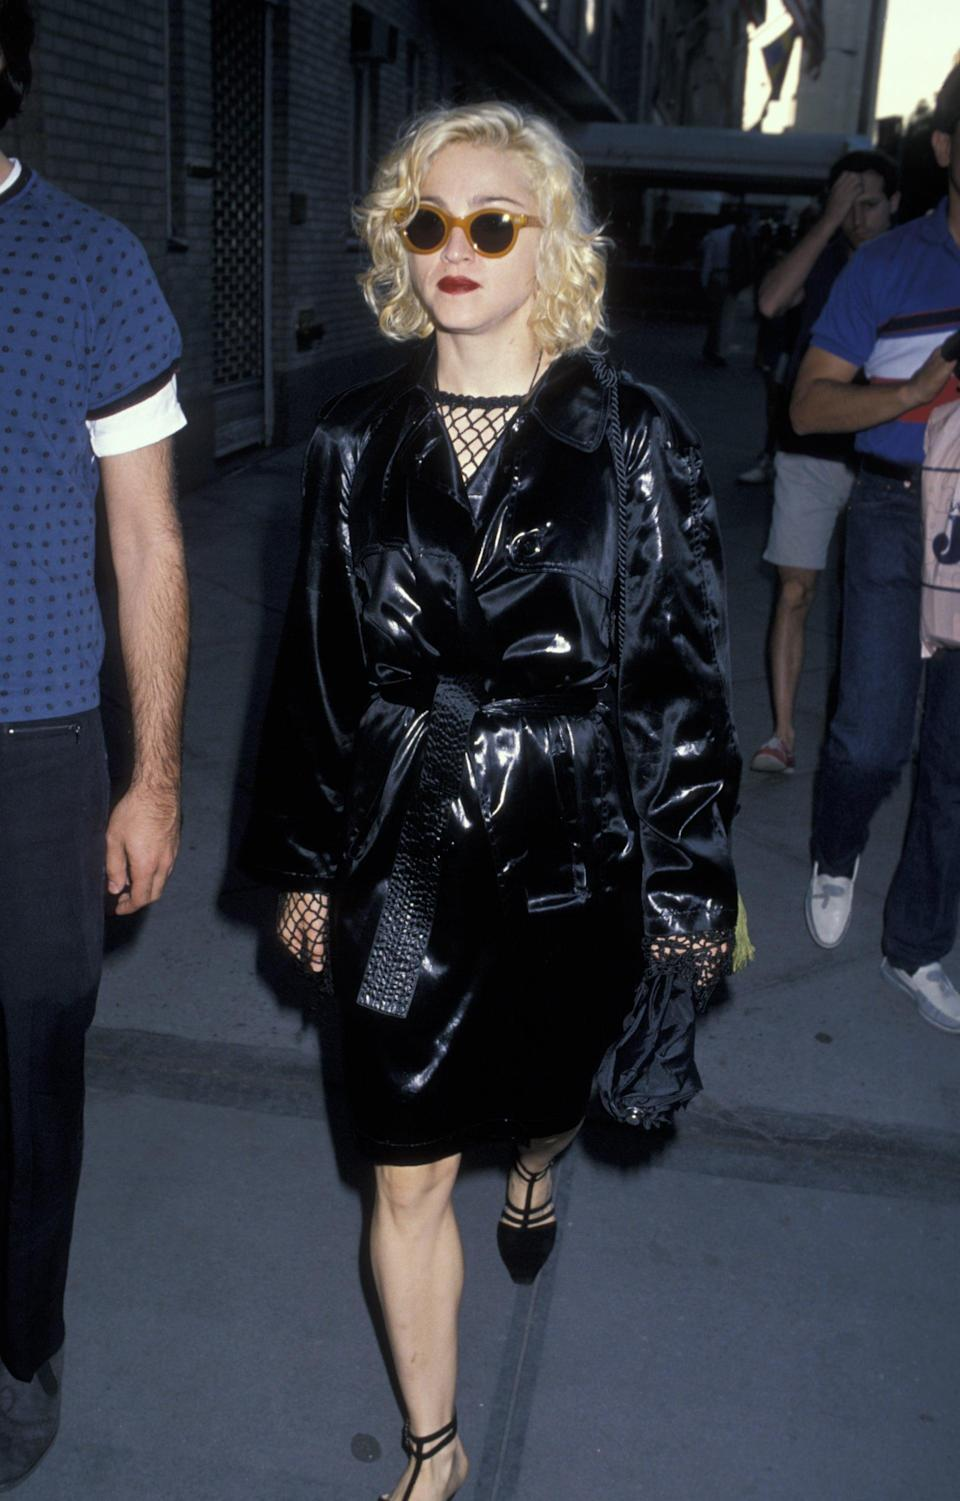 """<p><a href=""""https://www.popsugar.com/celebrity/Madonna-Costume-Ideas-45229957"""" class=""""link rapid-noclick-resp"""" rel=""""nofollow noopener"""" target=""""_blank"""" data-ylk=""""slk:Madonna"""">Madonna</a> infamously passed by the Plaza Hotel in New York wearing this stylish black outfit like a true material girl. Here, she played around with textures, contrasting fishnet details with a shiny vinyl jacket. To top it off, effortless brown, round sunglasses and a dark red lip gave her look a pop of color. </p>"""